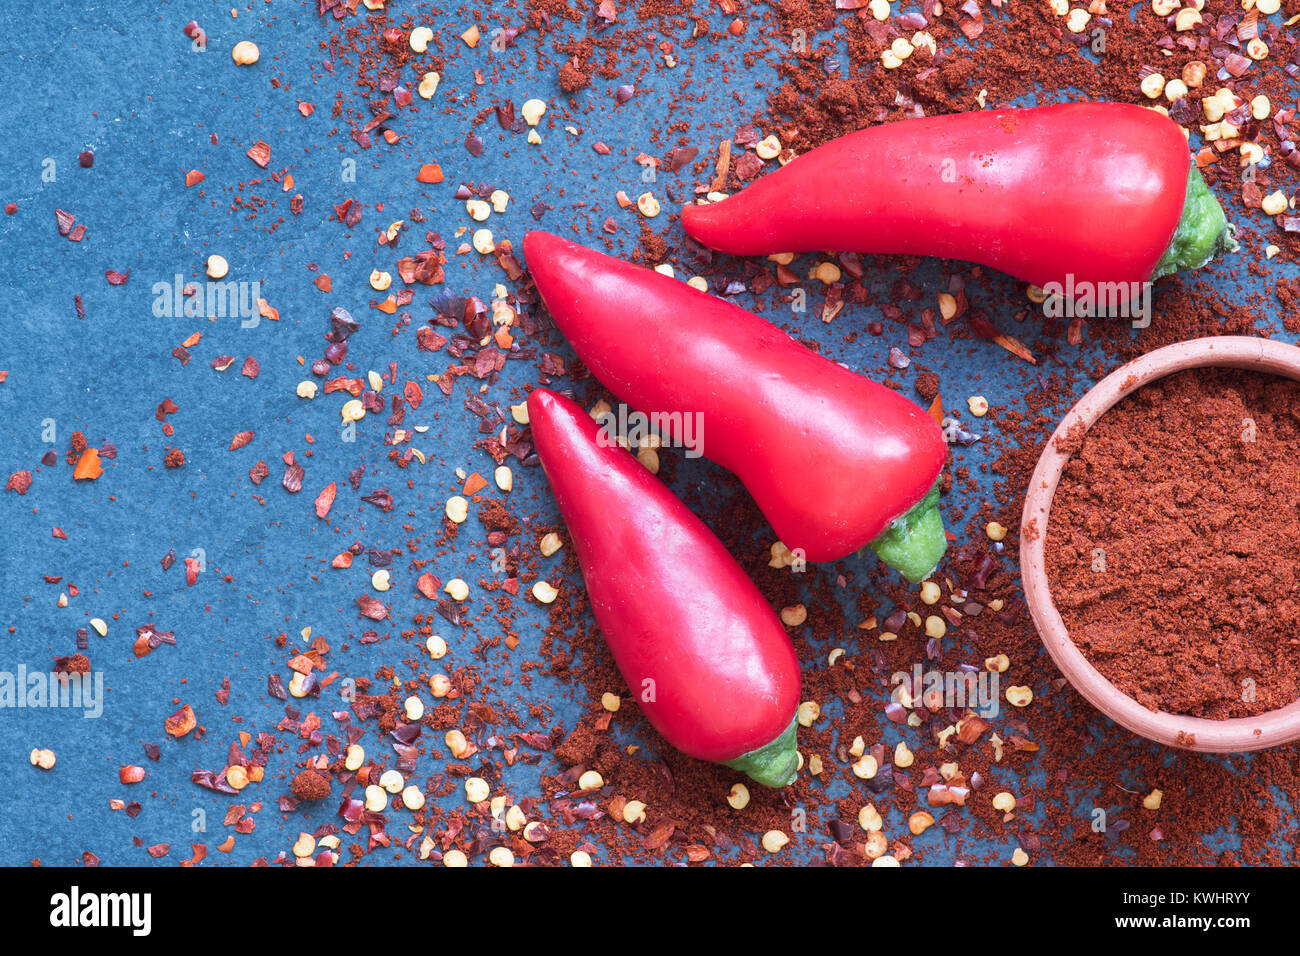 Capsicum. Red chili peppers, Chili powder and dried chili flakes on slate - Stock Image